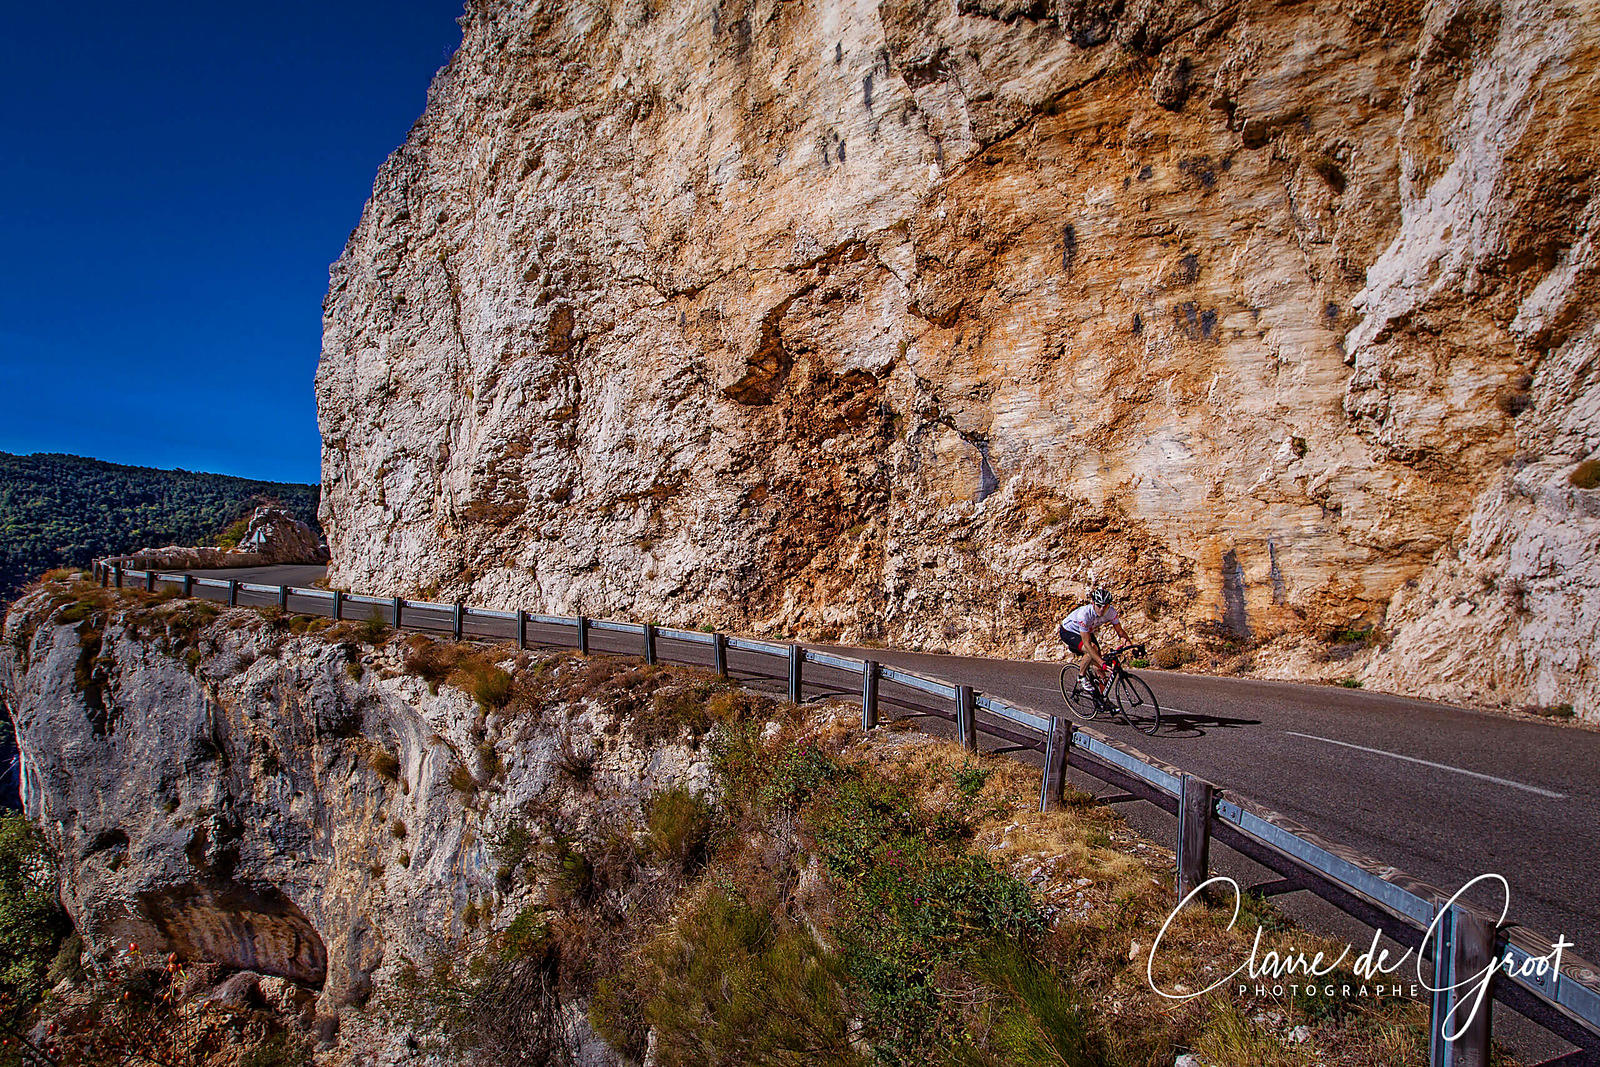 Outdoor cycling sports portrait on a mountain road